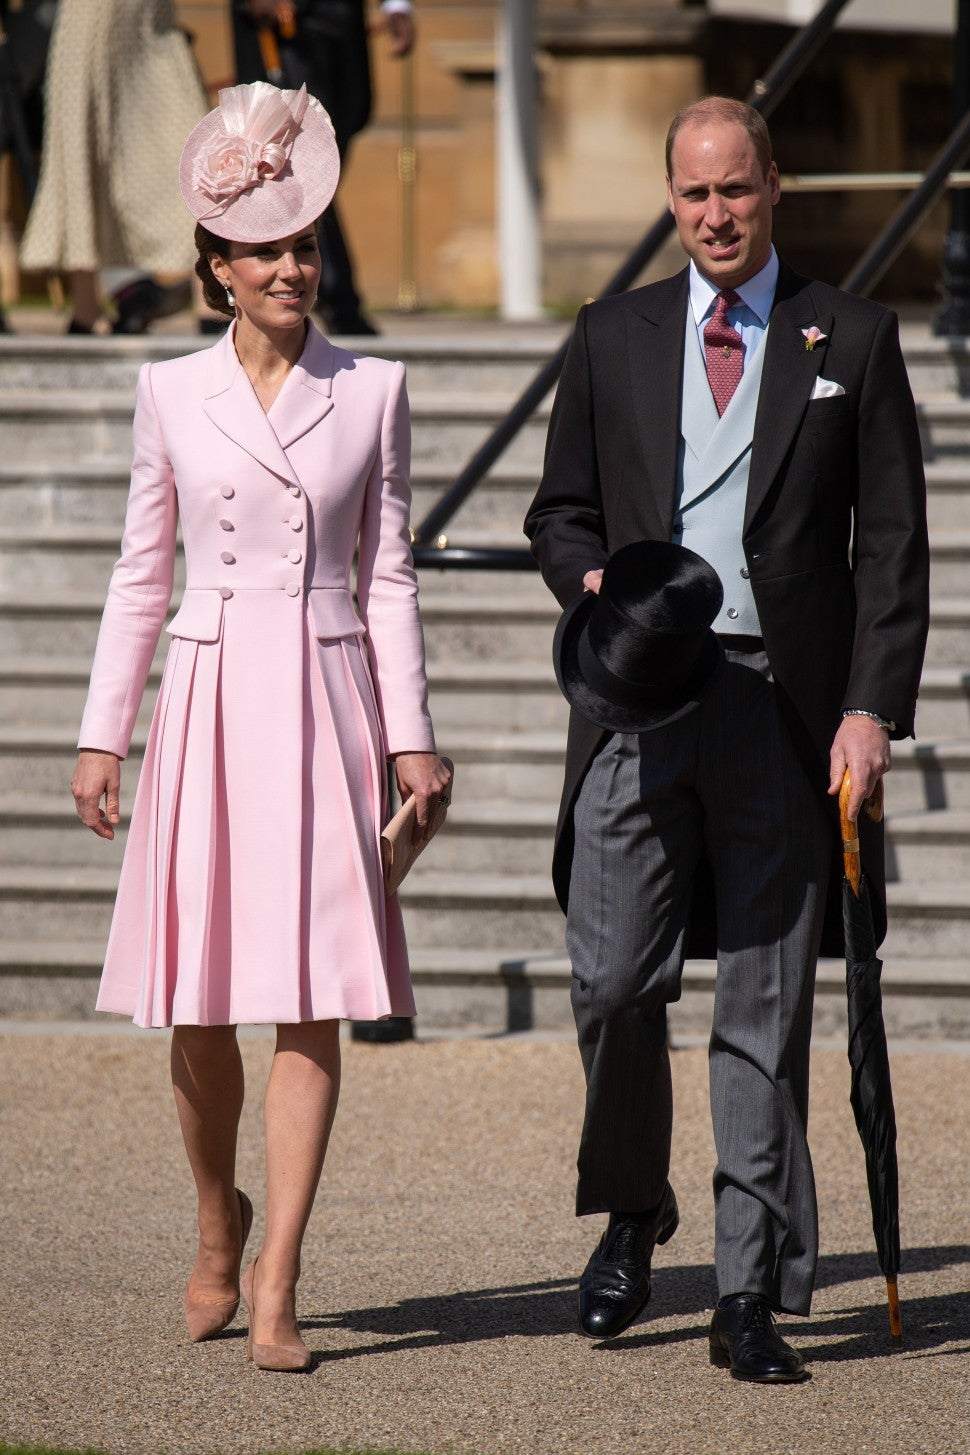 Kate Middleton and Prince William at Queen's Garden Party